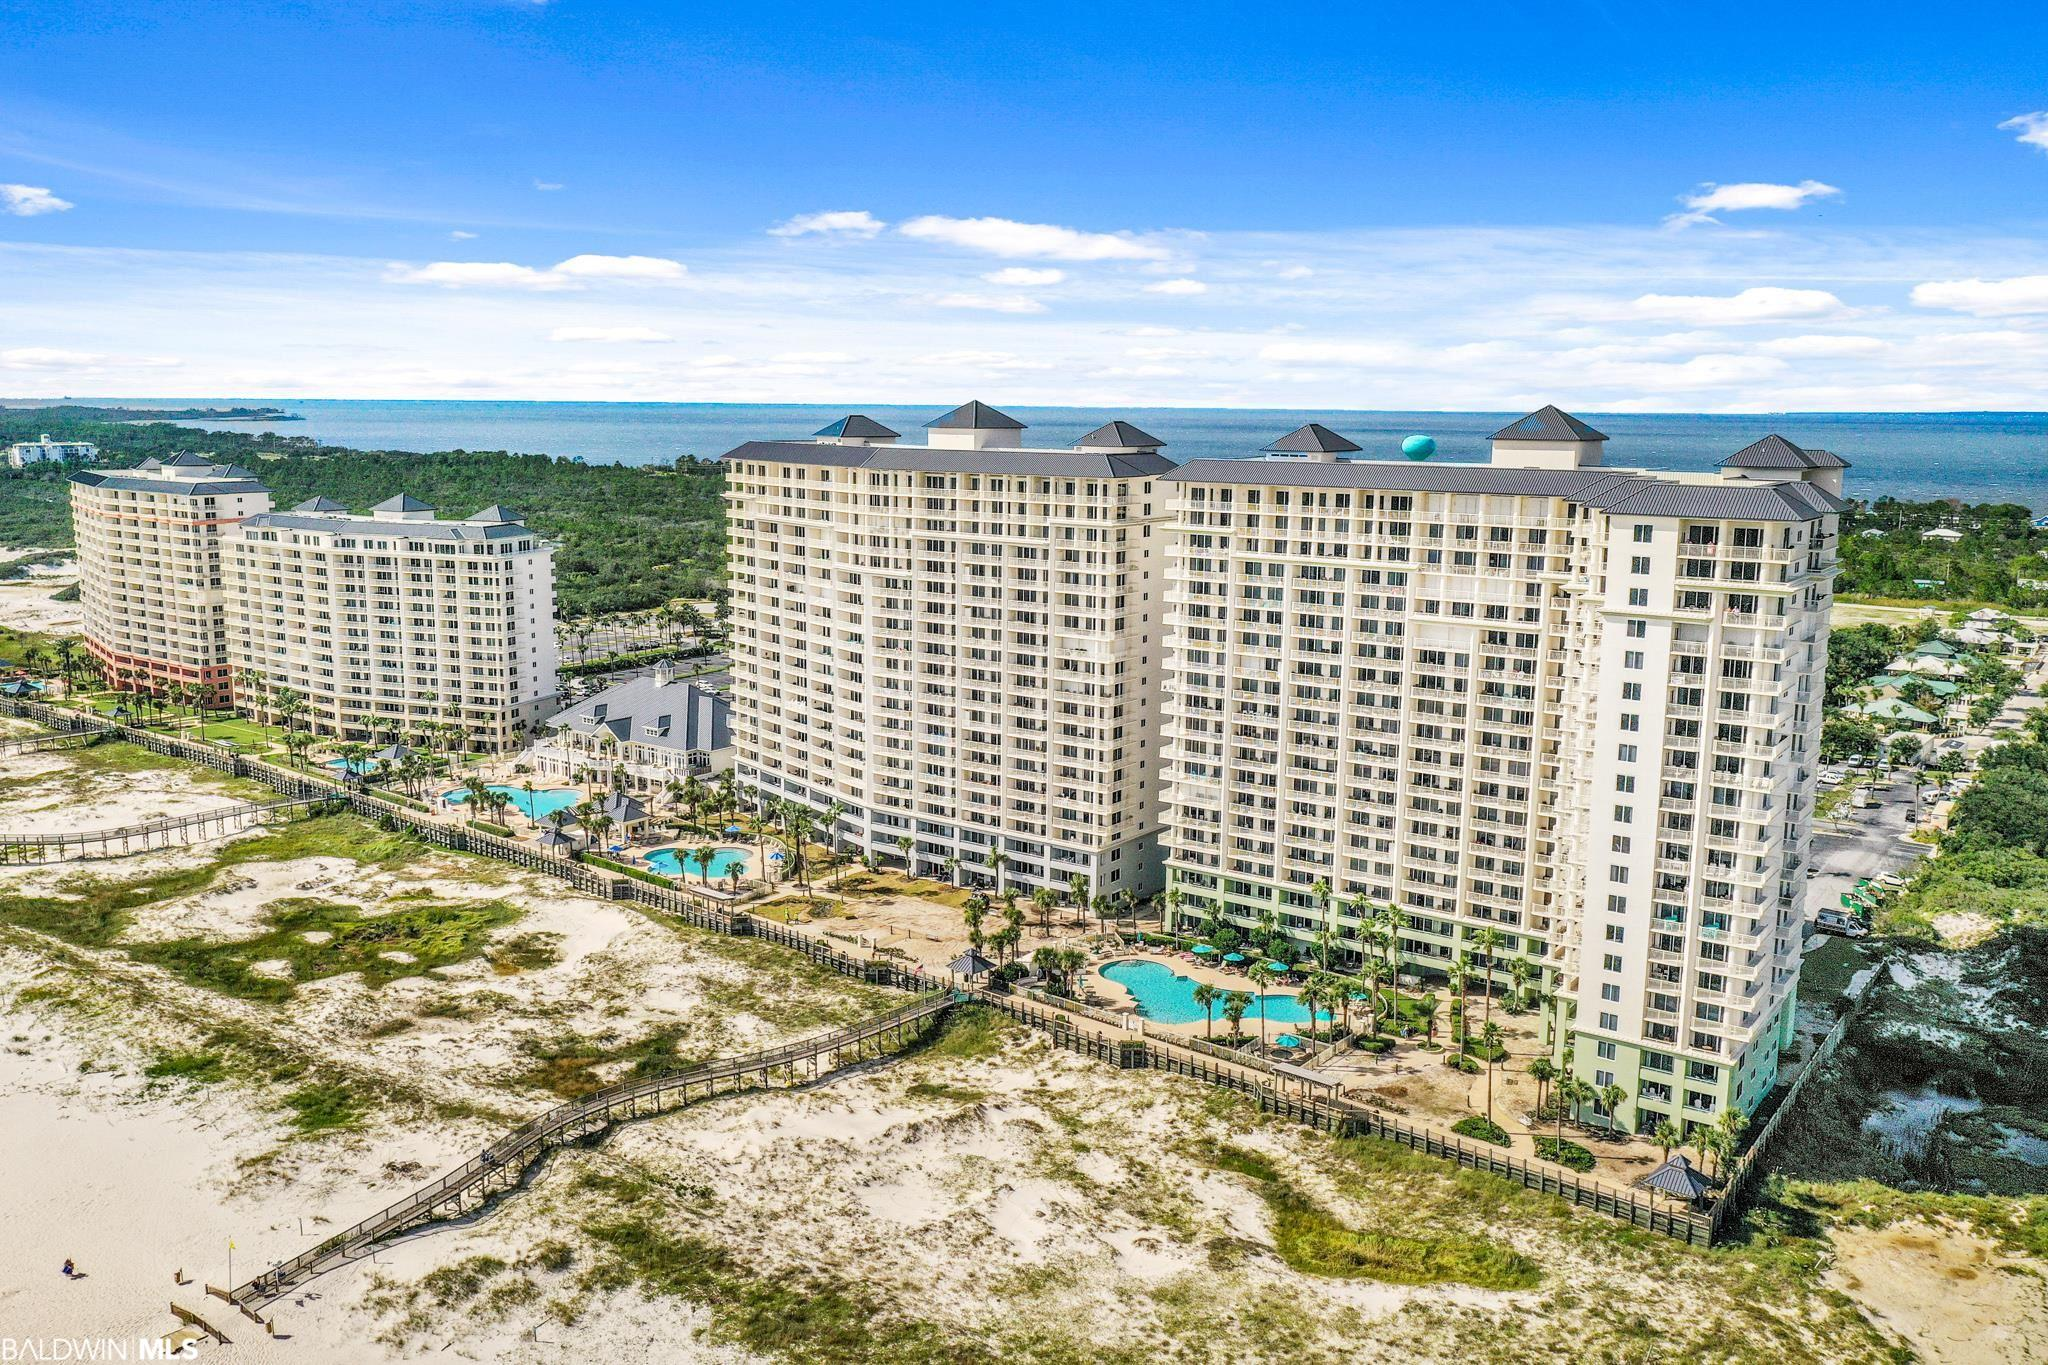 Peace and tranquility await at The Beach Club in Gulf Shores on the Fort Morgan Peninsula! Unit A1704 is a 17th floor condo located on the Gulf of Mexico and offers gorgeous waterfront views of the white sandy beaches. This well appointed 3 bedroom 3 bathroom furnished condo has a neutral pallet and is move-in ready. Amenities galore at The Beach Club: gulf-front clubhouse is the hub of activity featuring 26,000 square feet, award-winning seasonal Coast Restaurant, seasonal Gulfside Bar and Grill, full service Spa & Salon, outdoor pool, indoor pool, kiddy pool, Fitness Center, GameRoom, and Locker Rooms. The Racquet Club has 8 rubico tennis courts, including 2 lighted courts and a pro shop; the Activity Court has basketball and shuffleboard courts. Lots to do--walking paths, bike rentals, kids' playground and the nearby 7,150-acre Bon Secour National Wildlife Refuge. Optional Club membership. Club amenities require membership. New HVAC. Minimal hurricane damage to this unit. A great investment property, this unit brings in $50K+ annually in rentals.